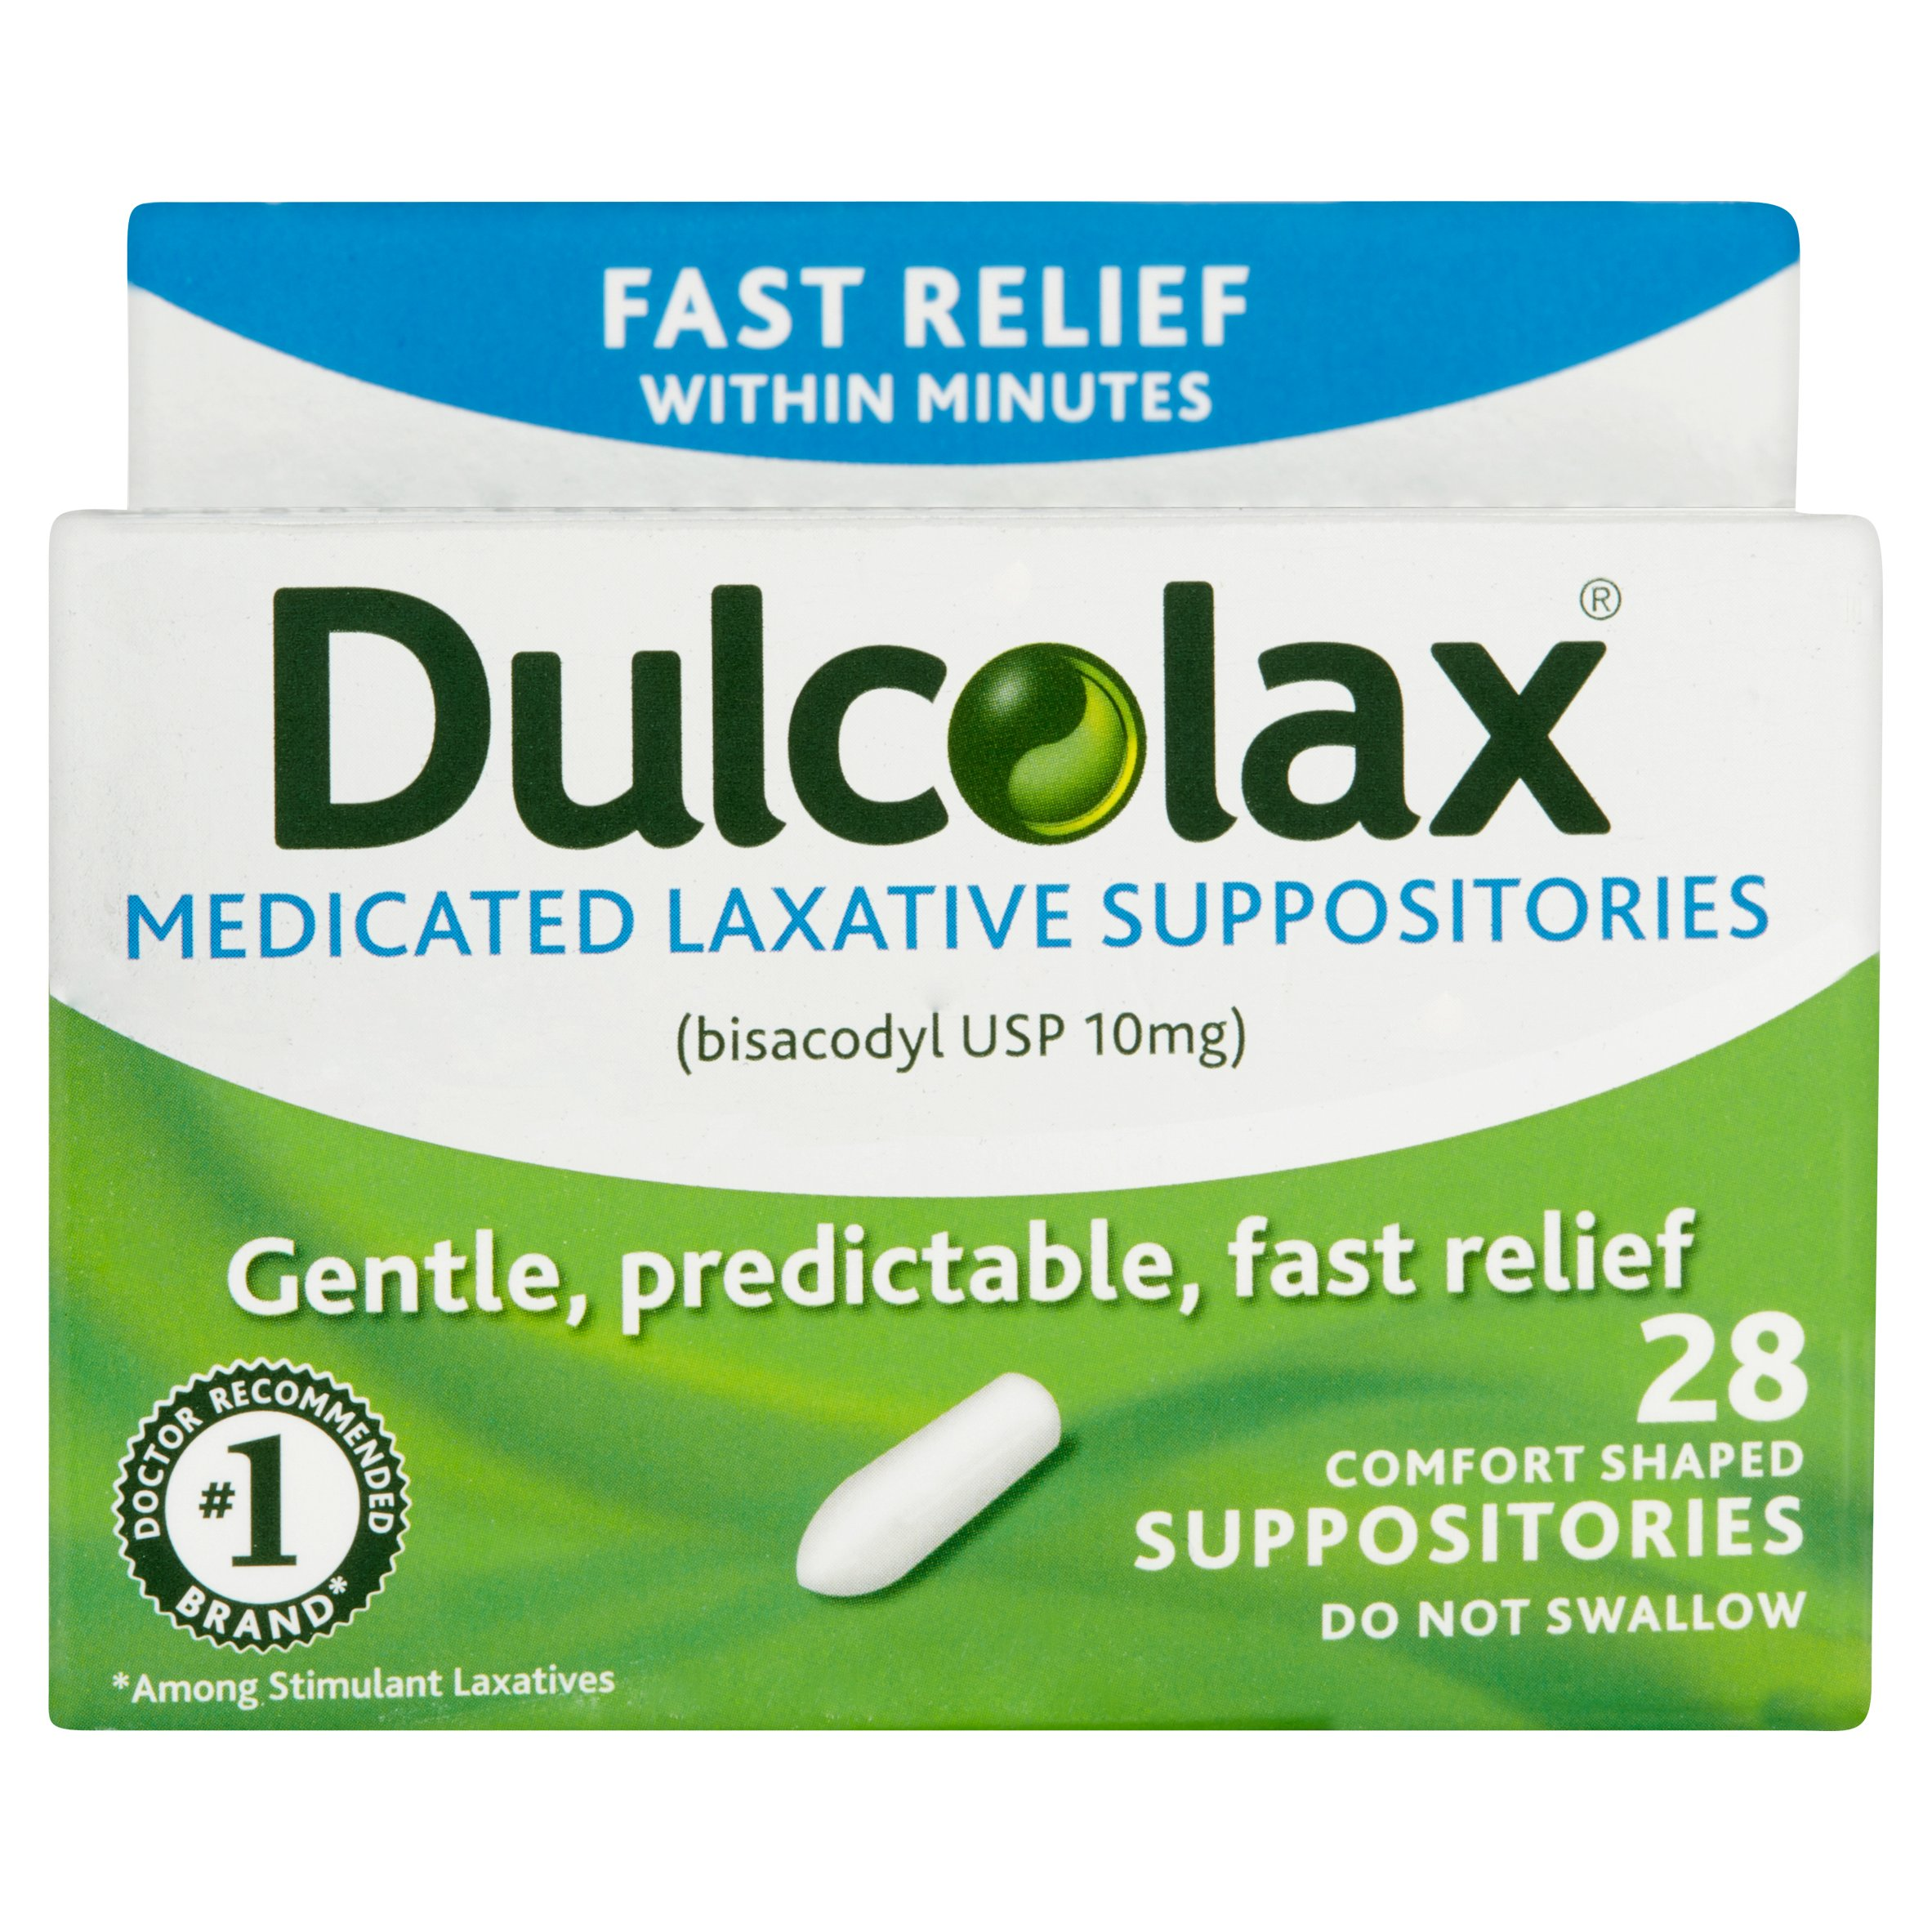 Dulcolax Medicated Laxative Suppositories 28ct, bisacodyl USP 10mg